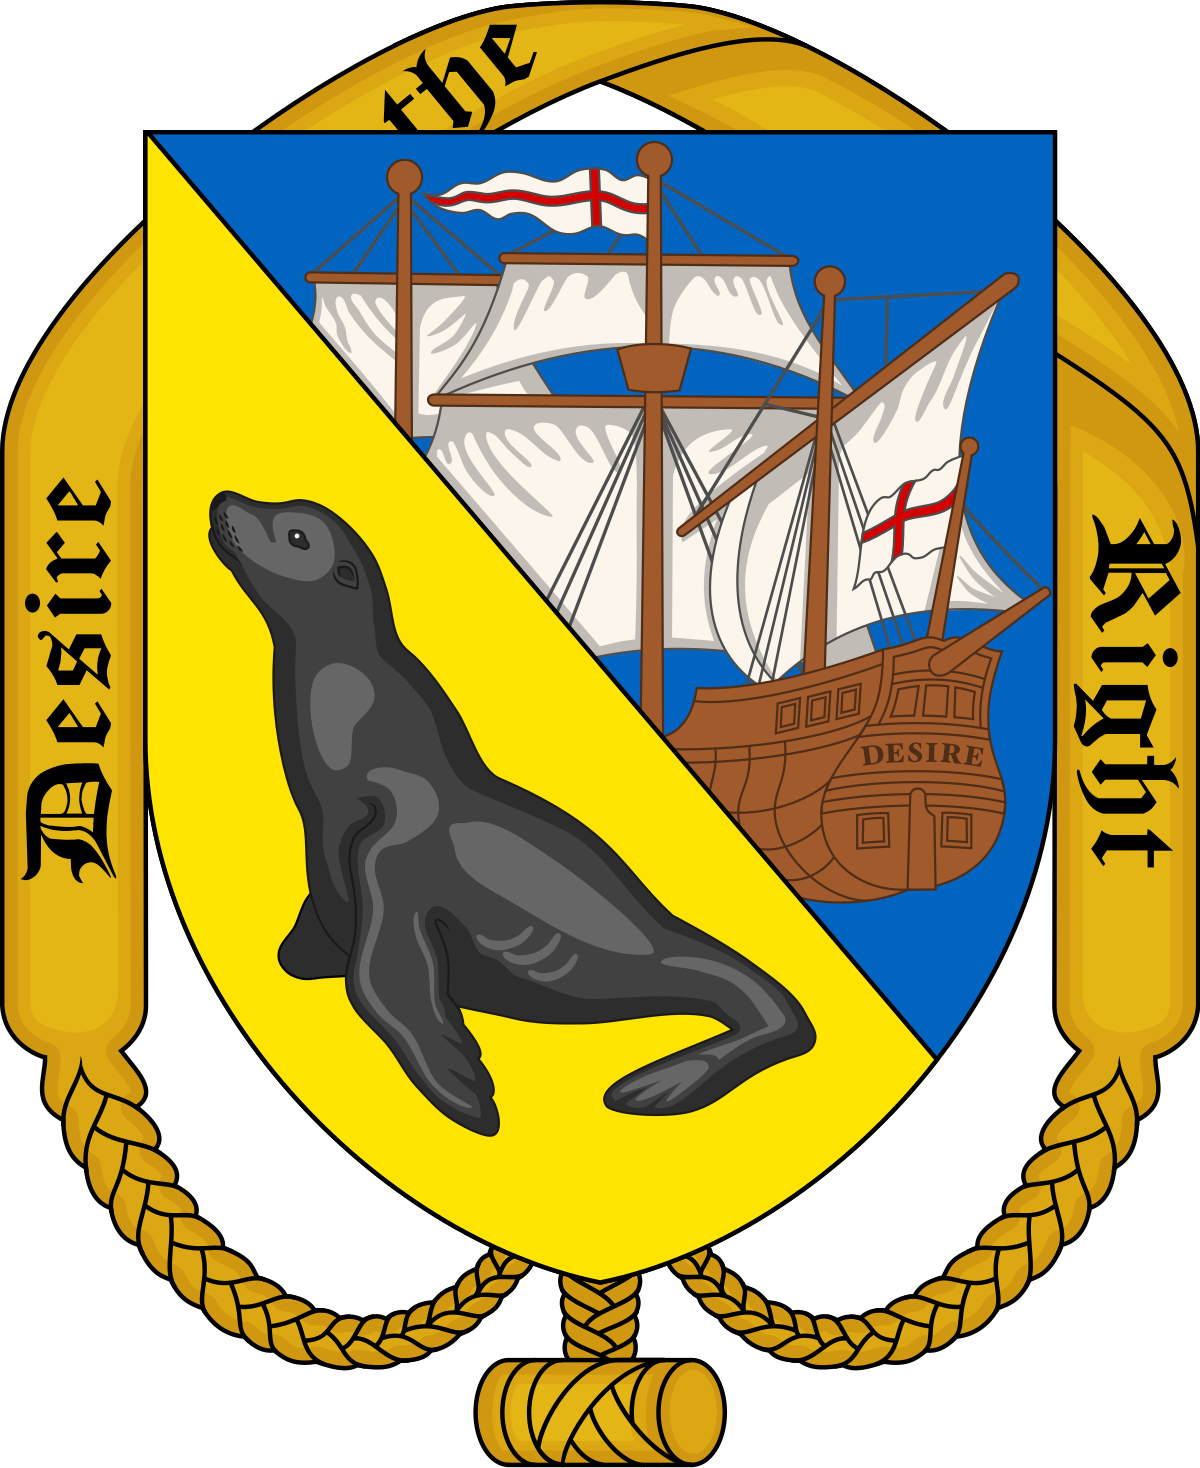 Clipart defence force address png freeuse Falkland Islands Defence Force - Wikipedia png freeuse